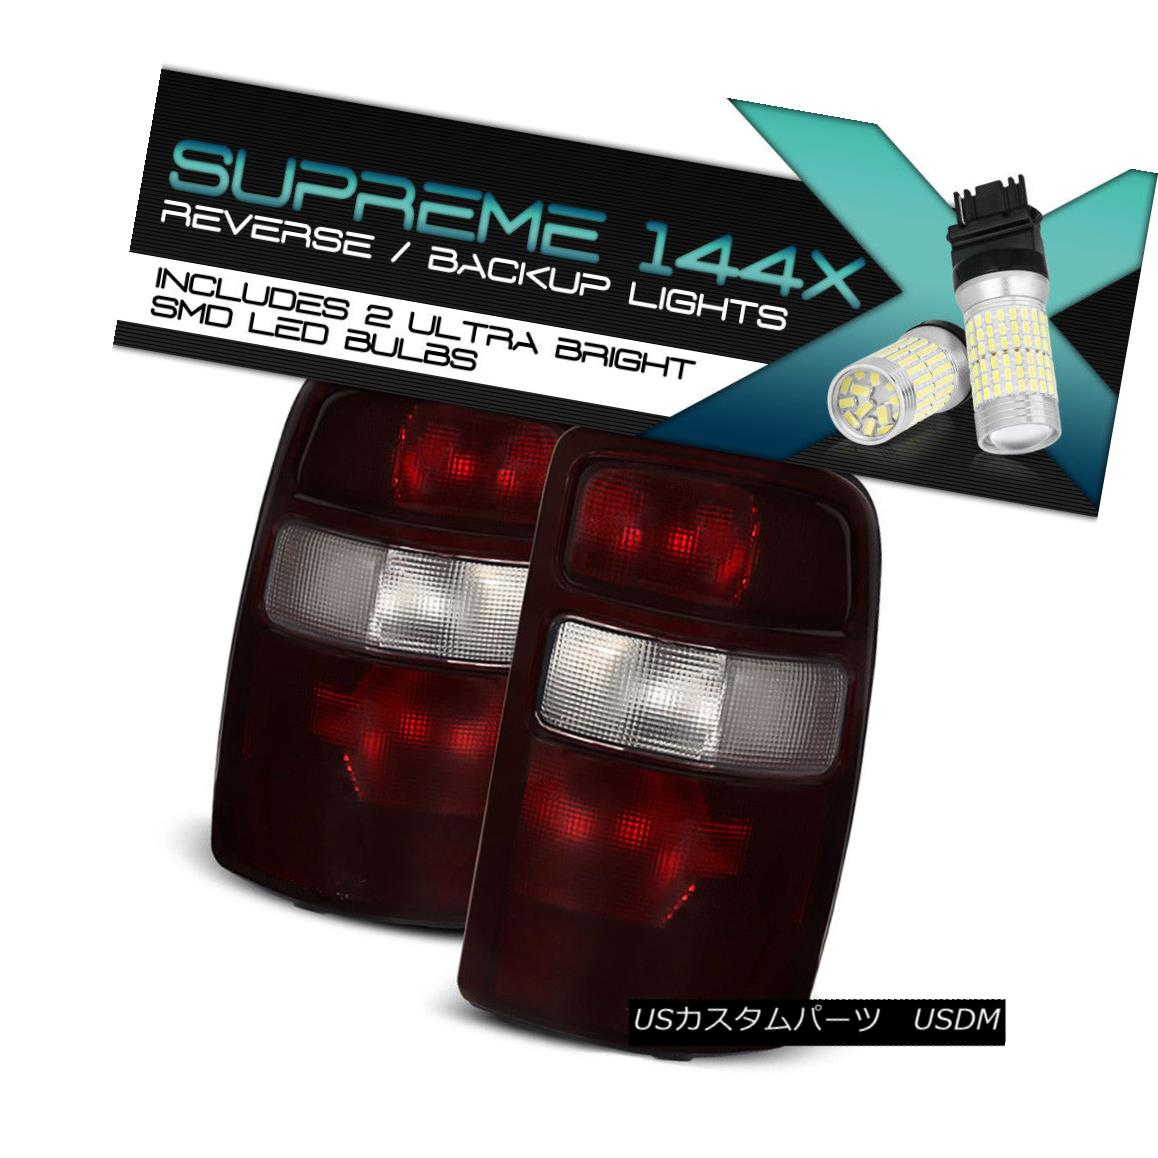 テールライト Full SMD Backup [DARK RED] 2000-2006 Tahoe Tahoe Yukon 2000-2006 Yukon Suburban Rear Brake Tail Lights フルSMDバックアップ[DARK RED] 2000-2006 Tahoe Yukon郊外のリアブレーキテールライト, 塩原町:48dc0ba0 --- officewill.xsrv.jp